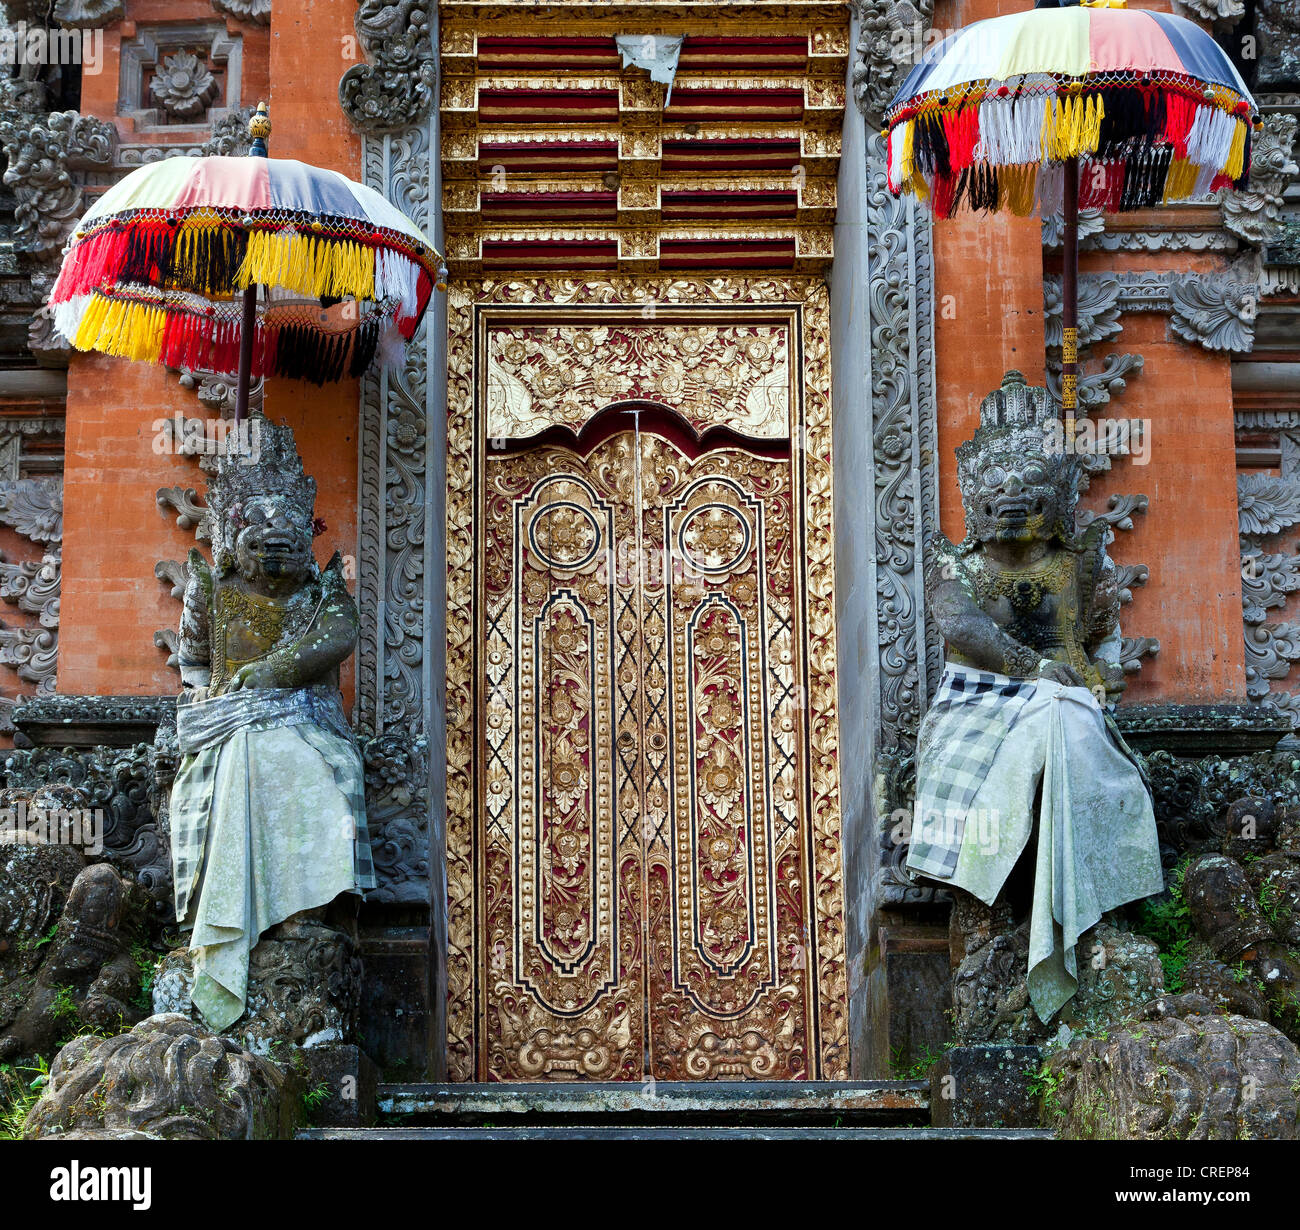 Ornate door in a temple complex, Ubud, central Bali, Bali, Indonesia, Southeast Asia, Asia - Stock Image